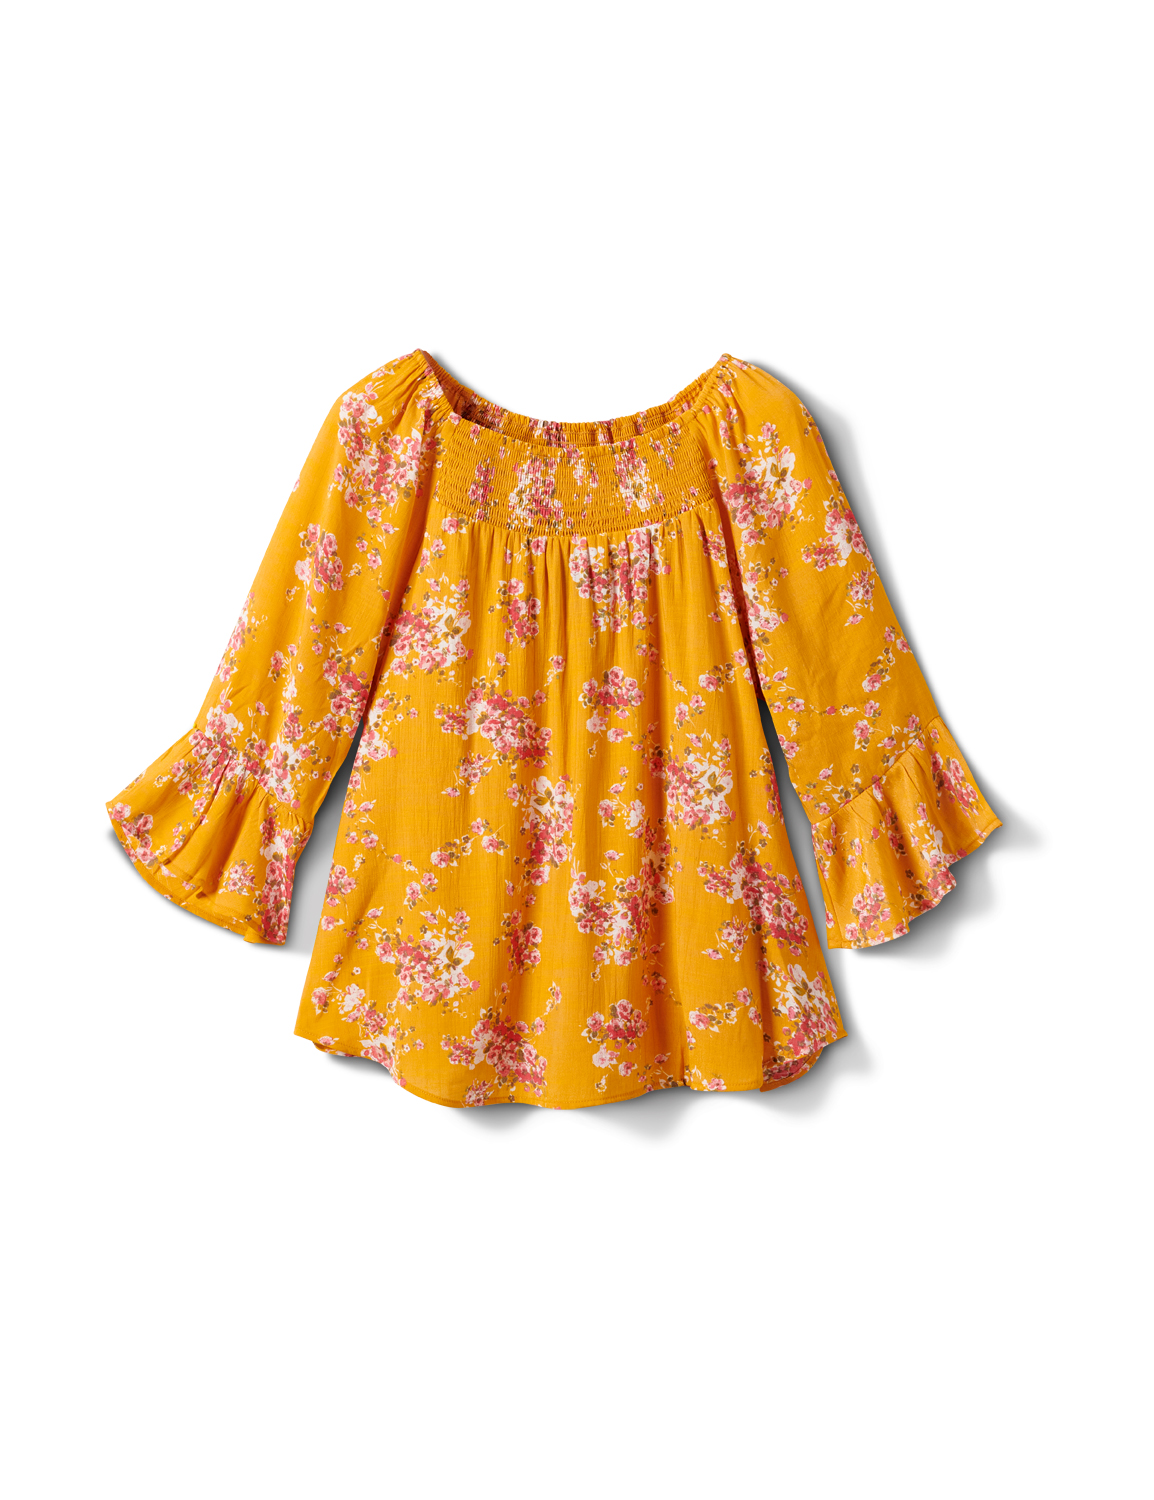 Floral Smock Neck Peasant Top -Gold/Red - Front